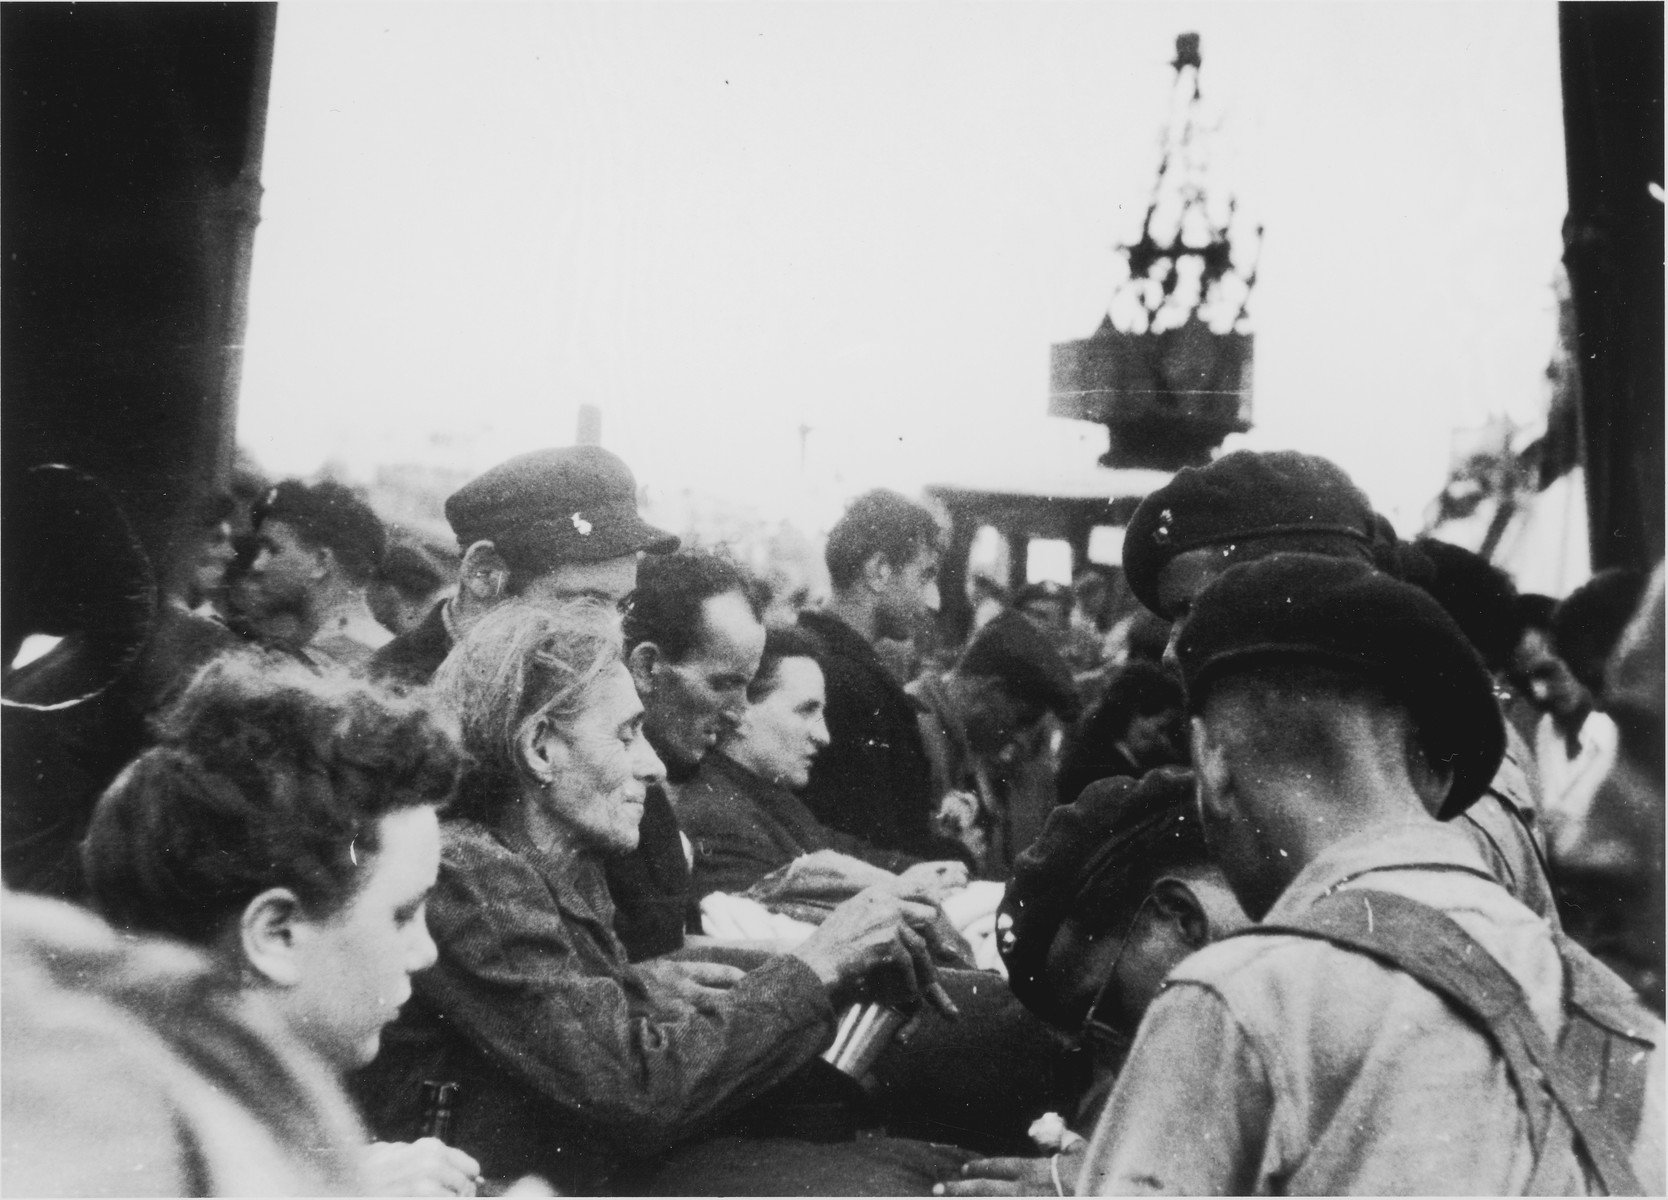 Passengers of the Exodus 1947 have their papers checked by British soldiers on the pier in Haifa.